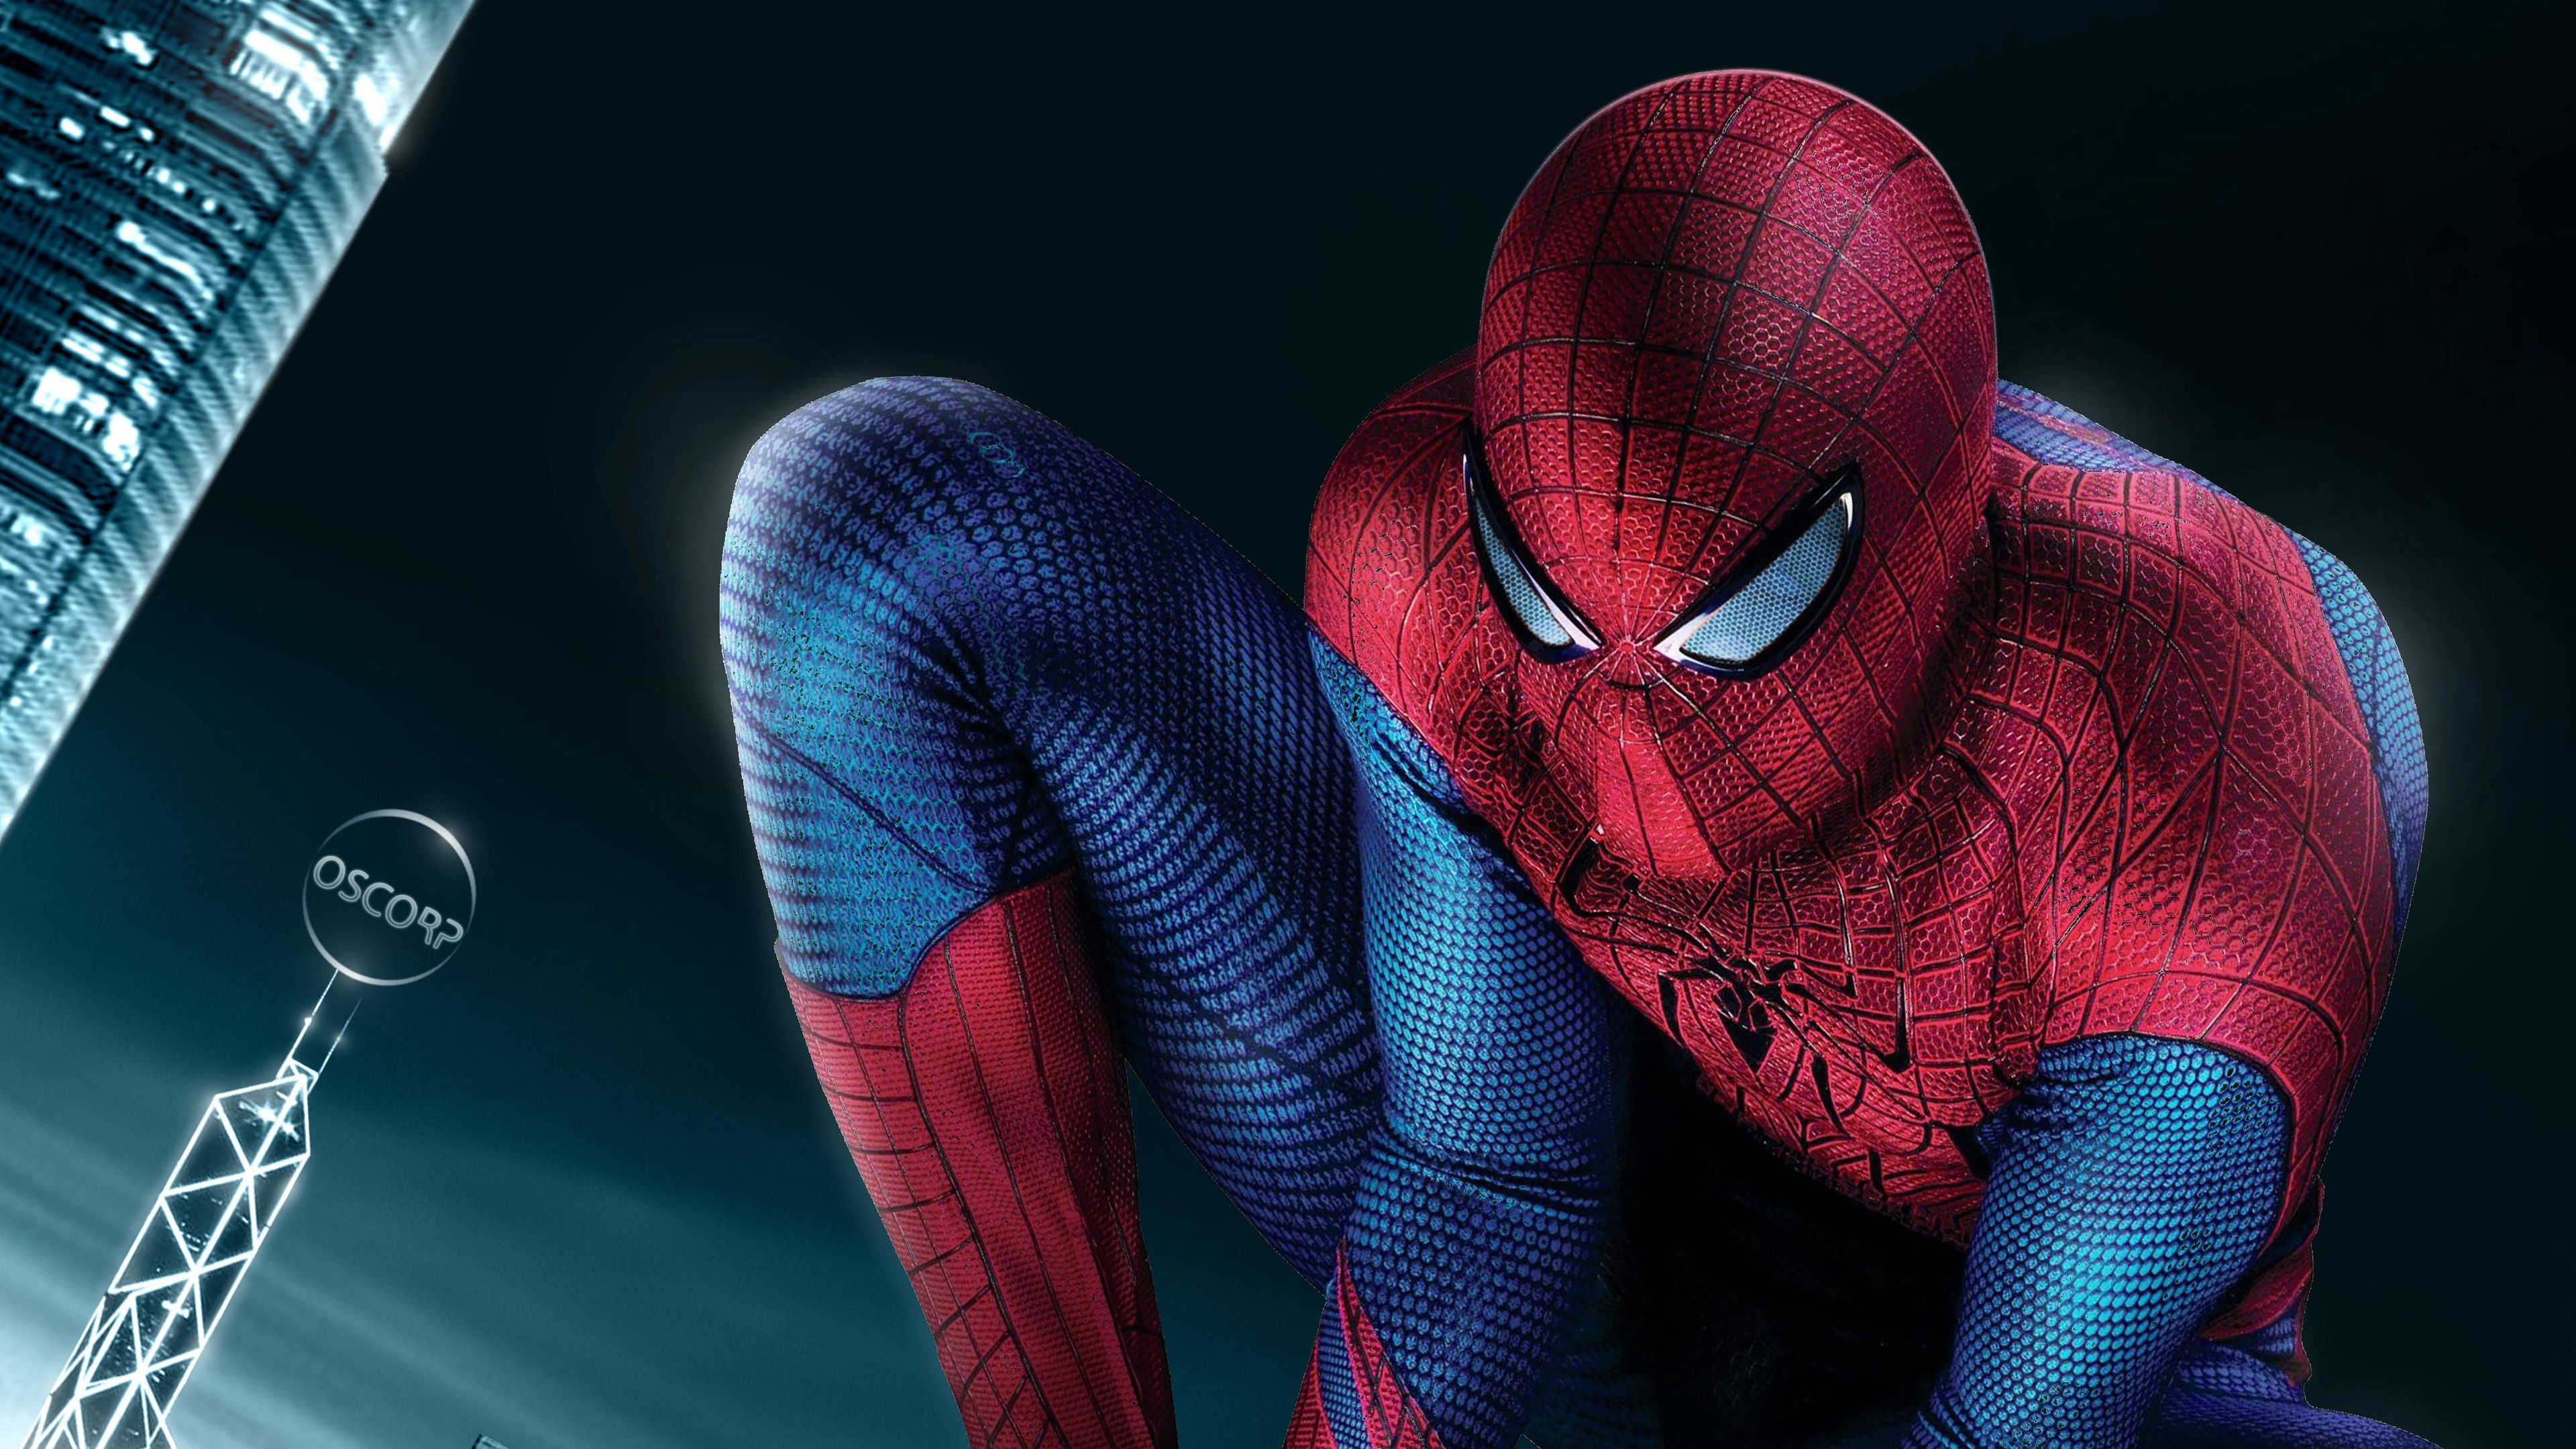 Amazing Spider Man 4k Superheroes Wallpapers Spiderman Wallpapers Hd Wallpapers Digital Art Wallpapers Deviantart Wallpa Spiderman Amazing Spider Superhero